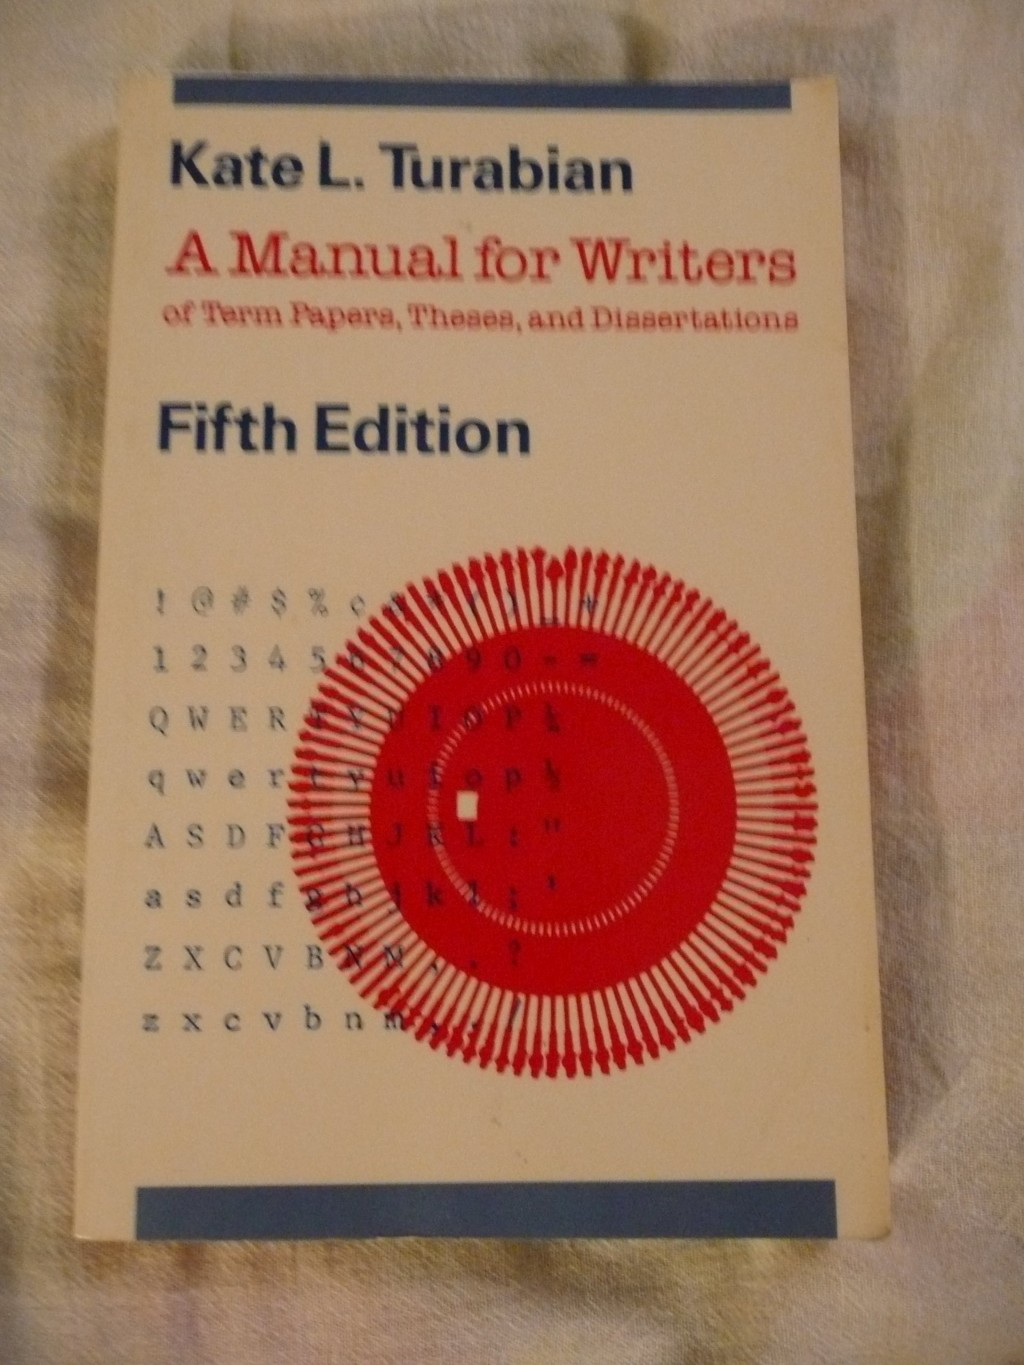 020 91nltv7olql Research Paper Manual For Writers Of Papers Theses And Sensational A Dissertations Ed. 8 Turabian Ninth Edition Large